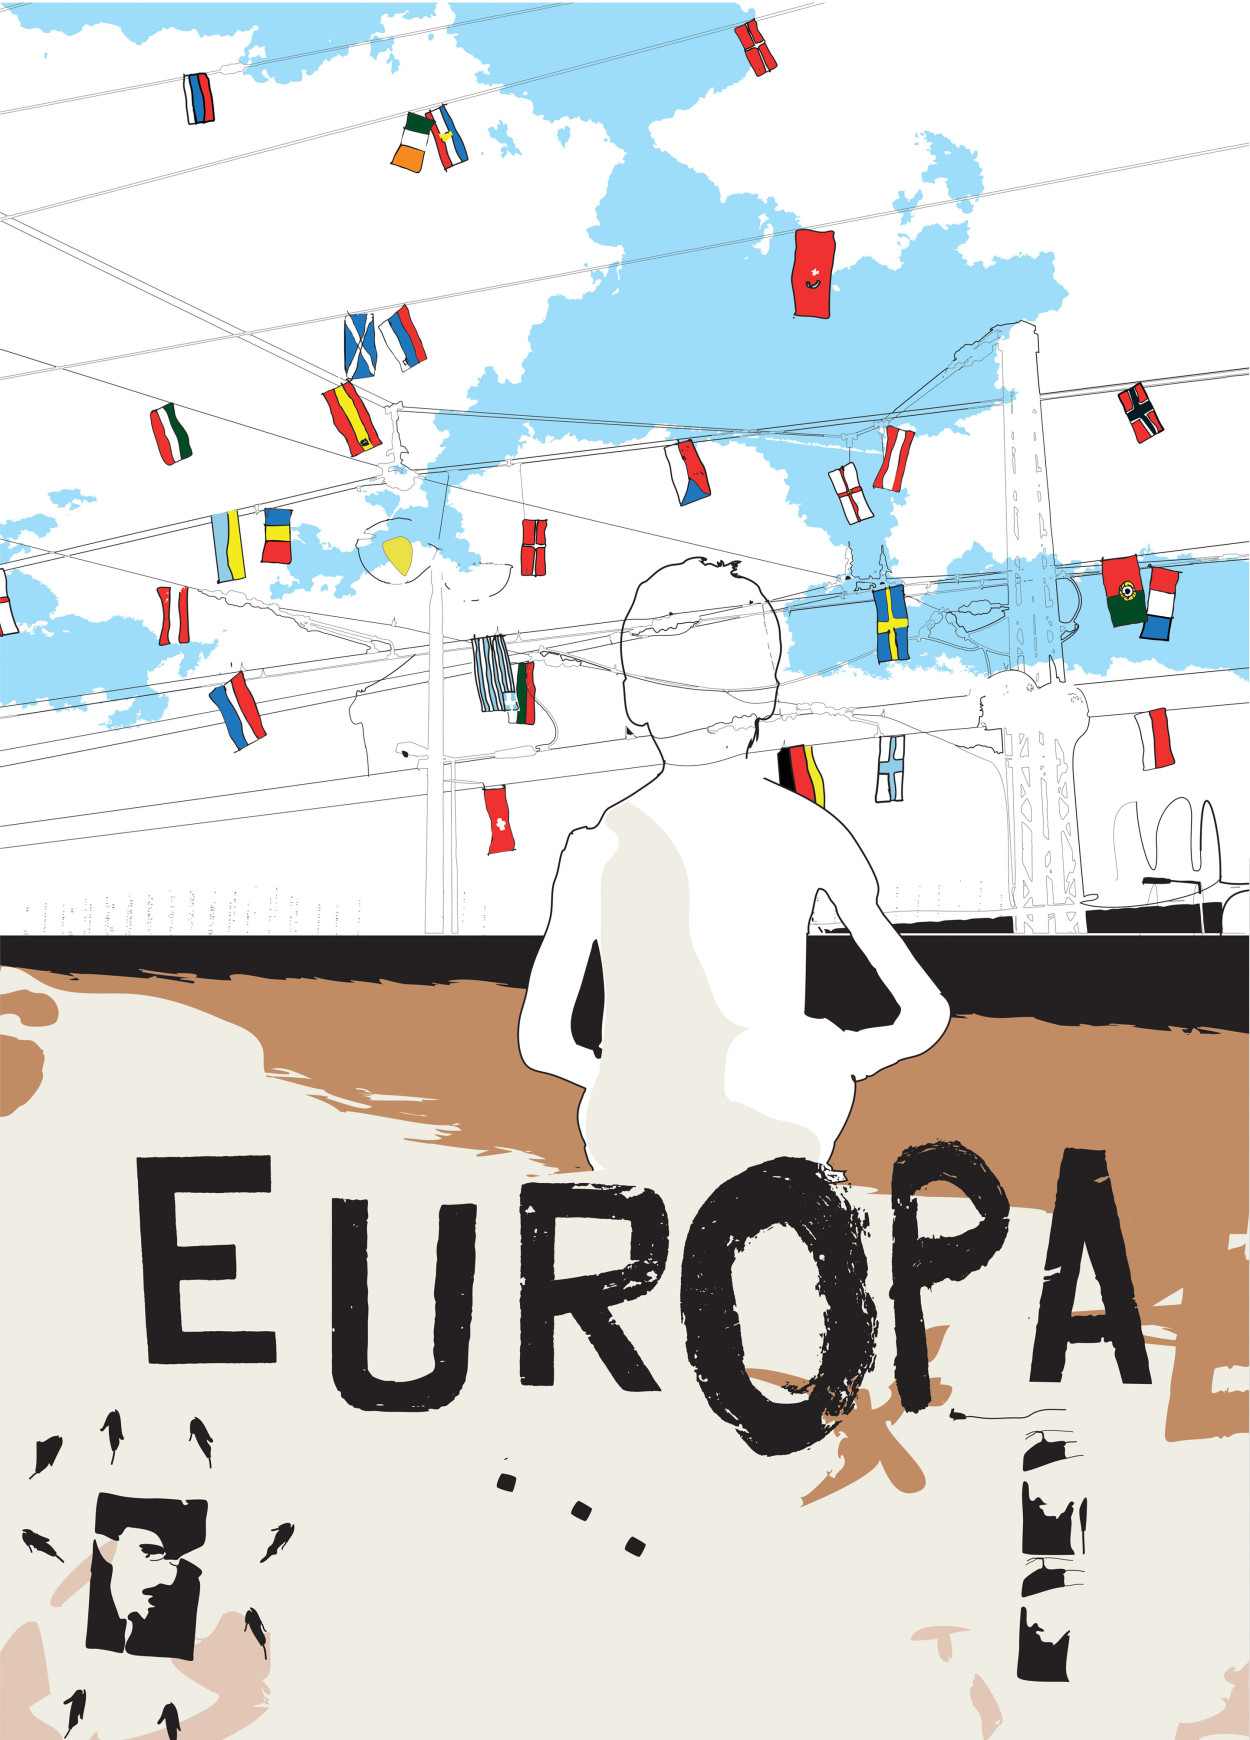 poster-europa-by-designers.jpg.pagespeed.ce.X8F7YA3h9d